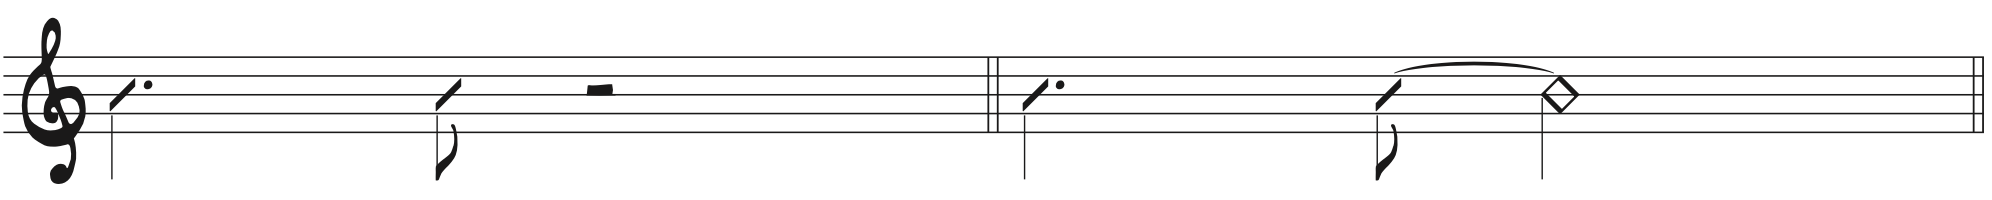 Dotted Quarter Note + Eighth Note swing rhythm for fly me to the moon beginner piano